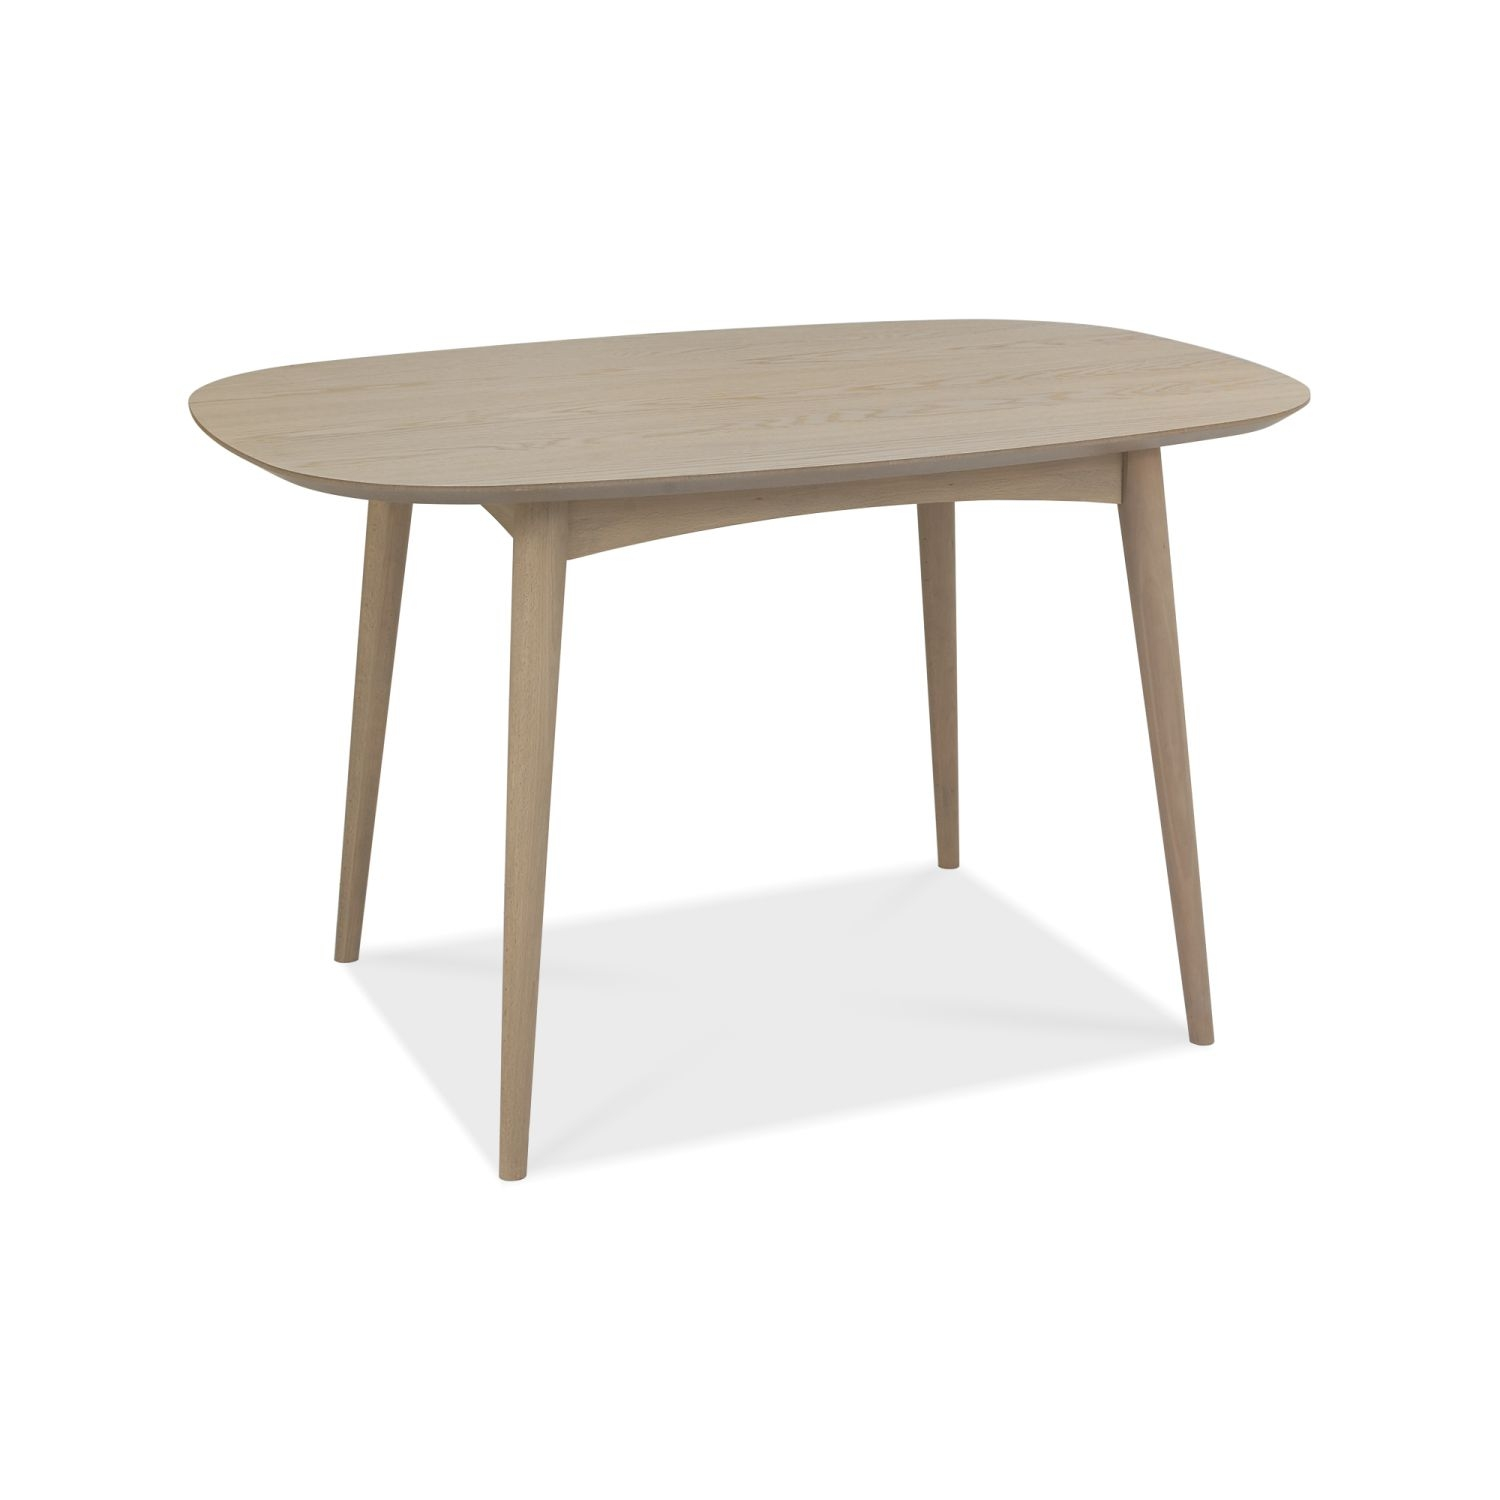 Image of Casa Ottawa 4 Seater Dining Table